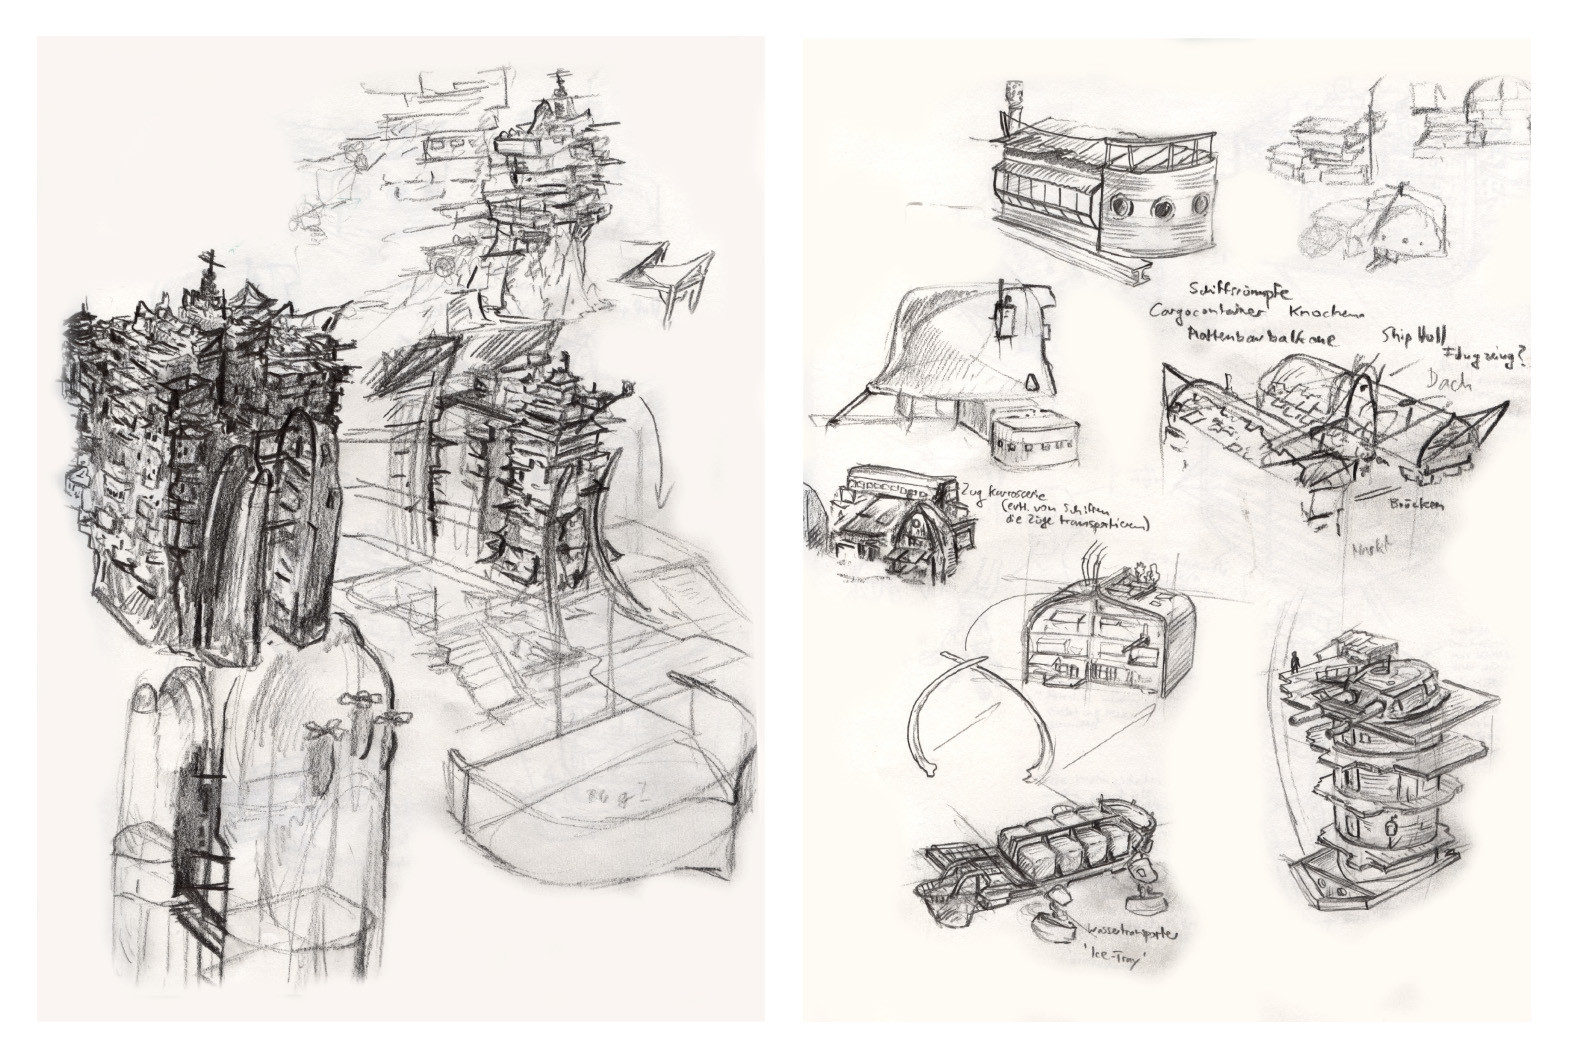 Later I developed the idea that the inhabitants use old ships as building material...